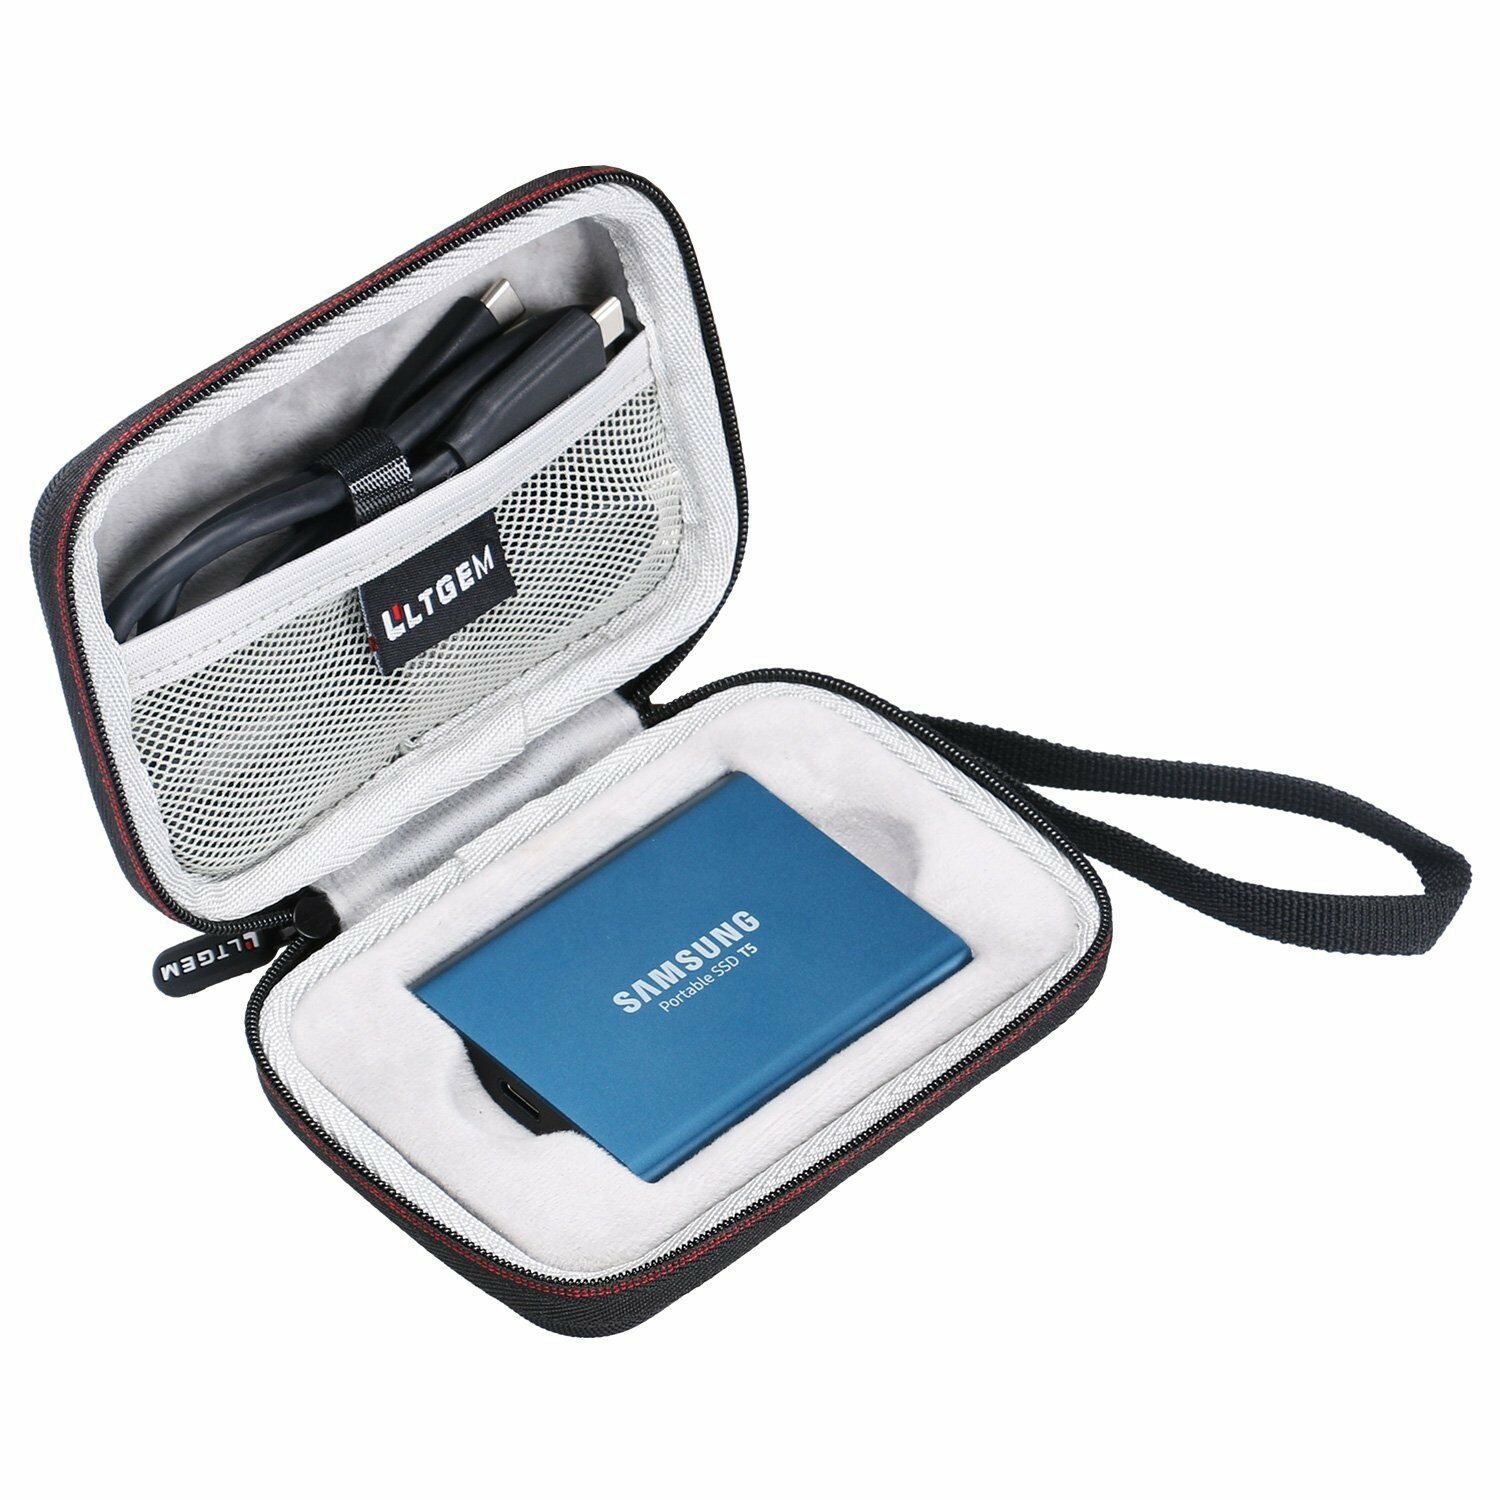 LTGEM Hard Case for Samsung T5/T3/T1 Portable 250GB 500GB 1T